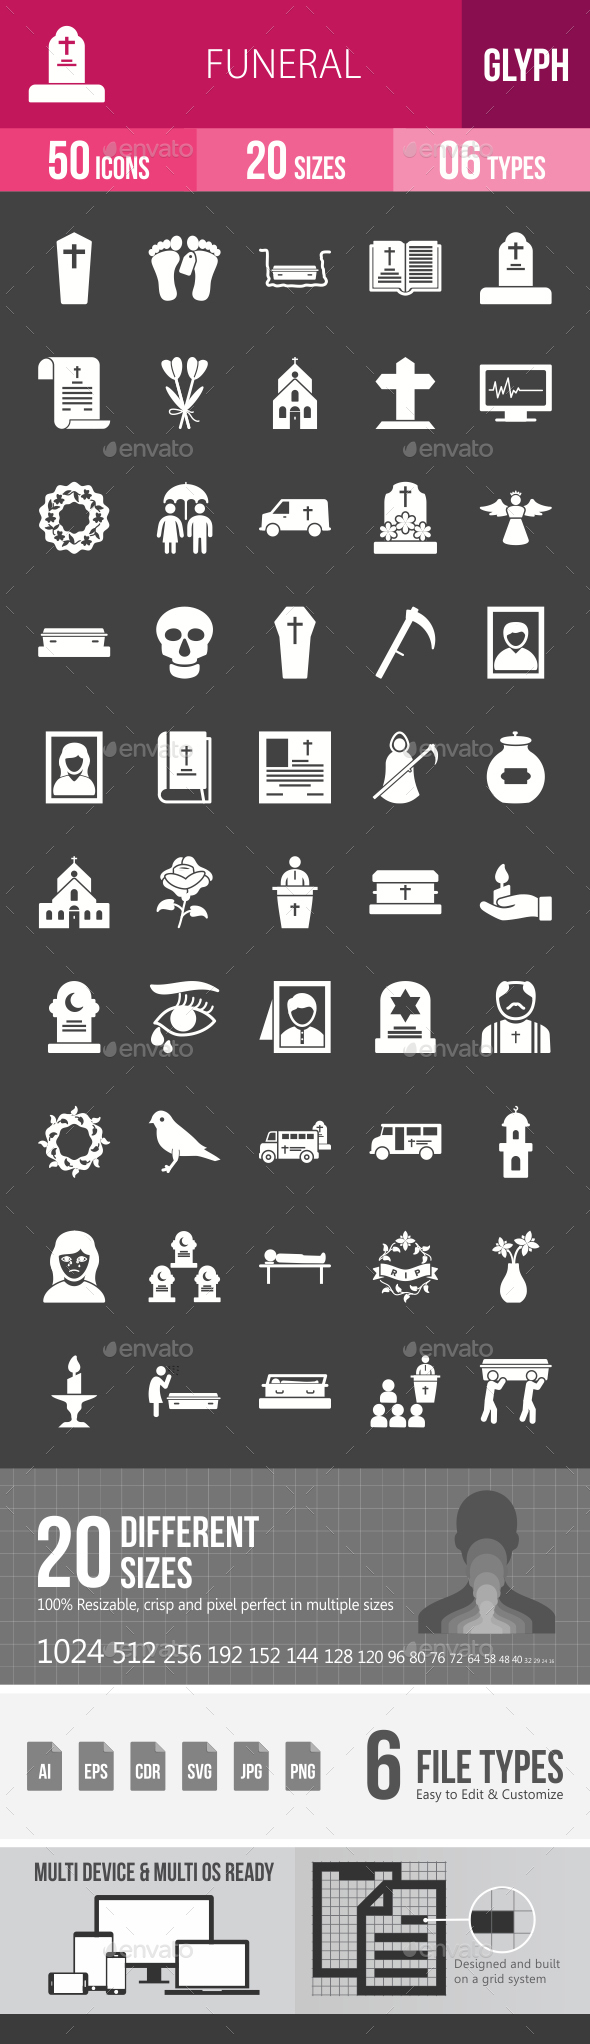 Funeral Glyph Inverted Icons - Icons